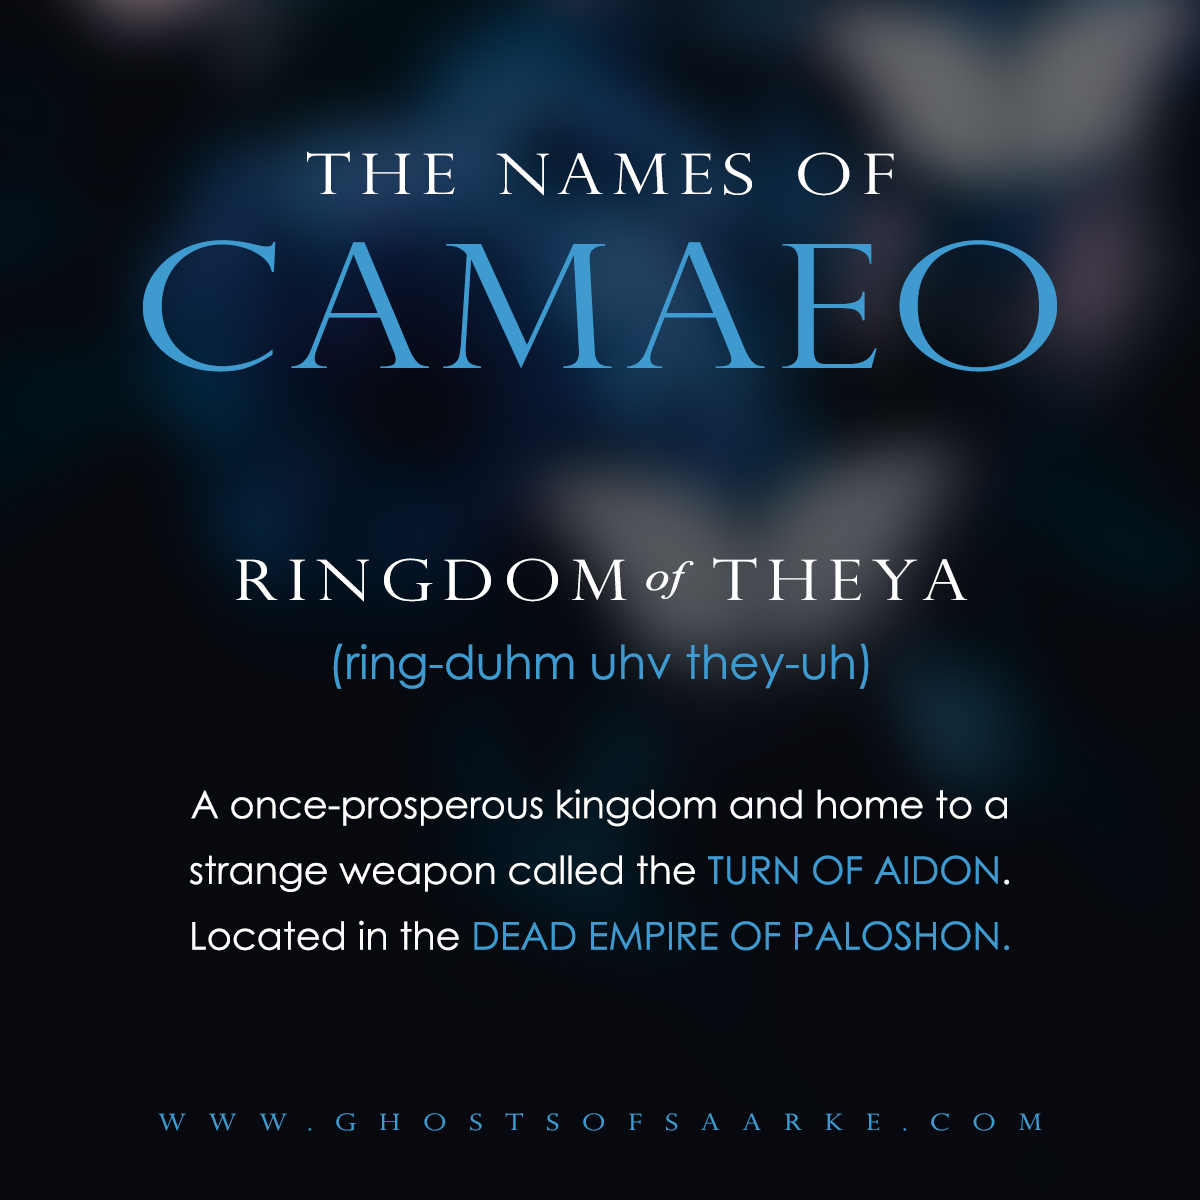 Camaeo - Ringdom of Theya